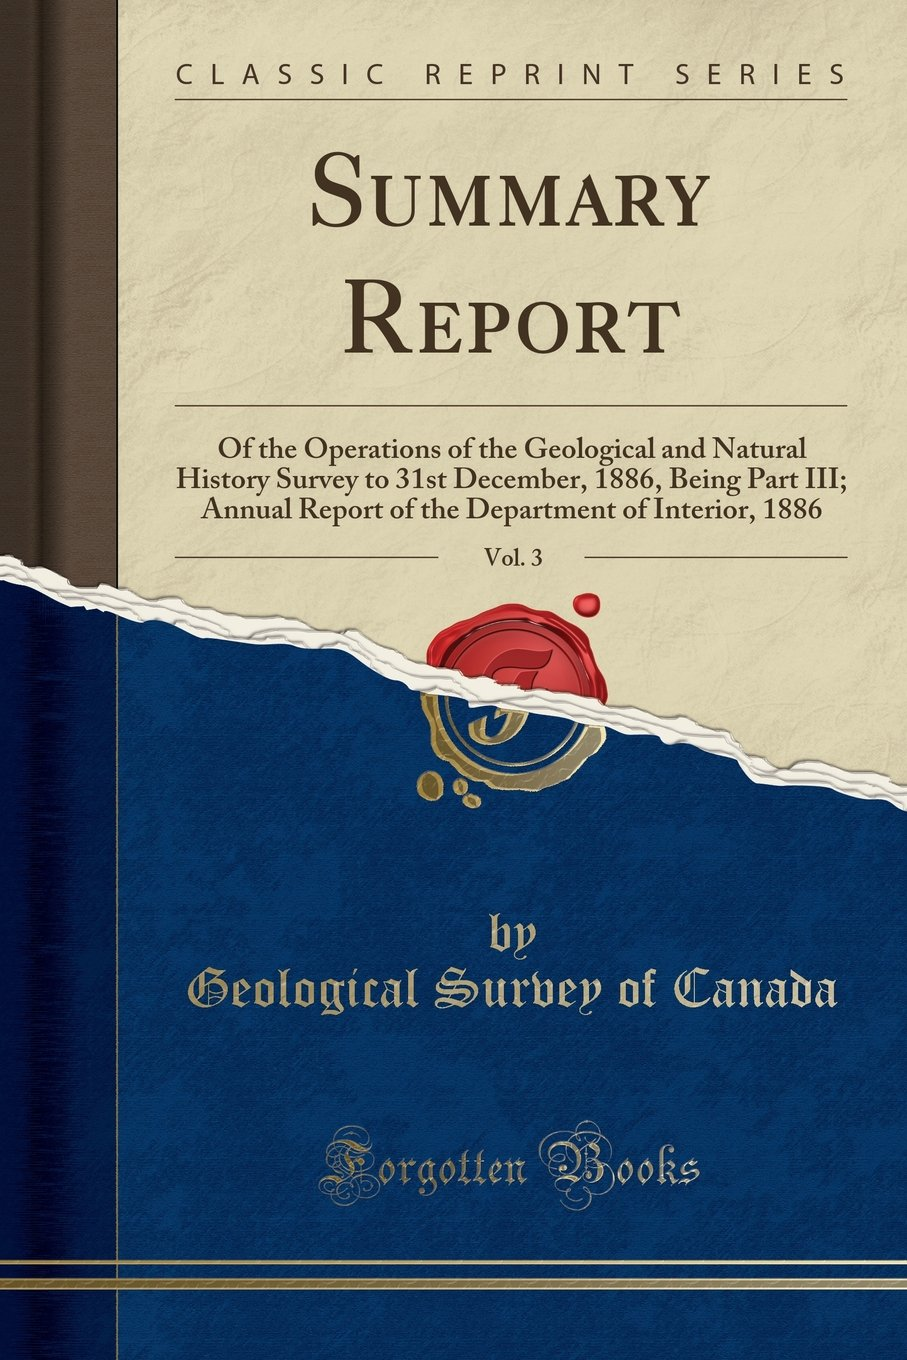 Download Summary Report, Vol. 3: Of the Operations of the Geological and Natural History Survey to 31st December, 1886, Being Part III; Annual Report of the Department of Interior, 1886 (Classic Reprint) PDF